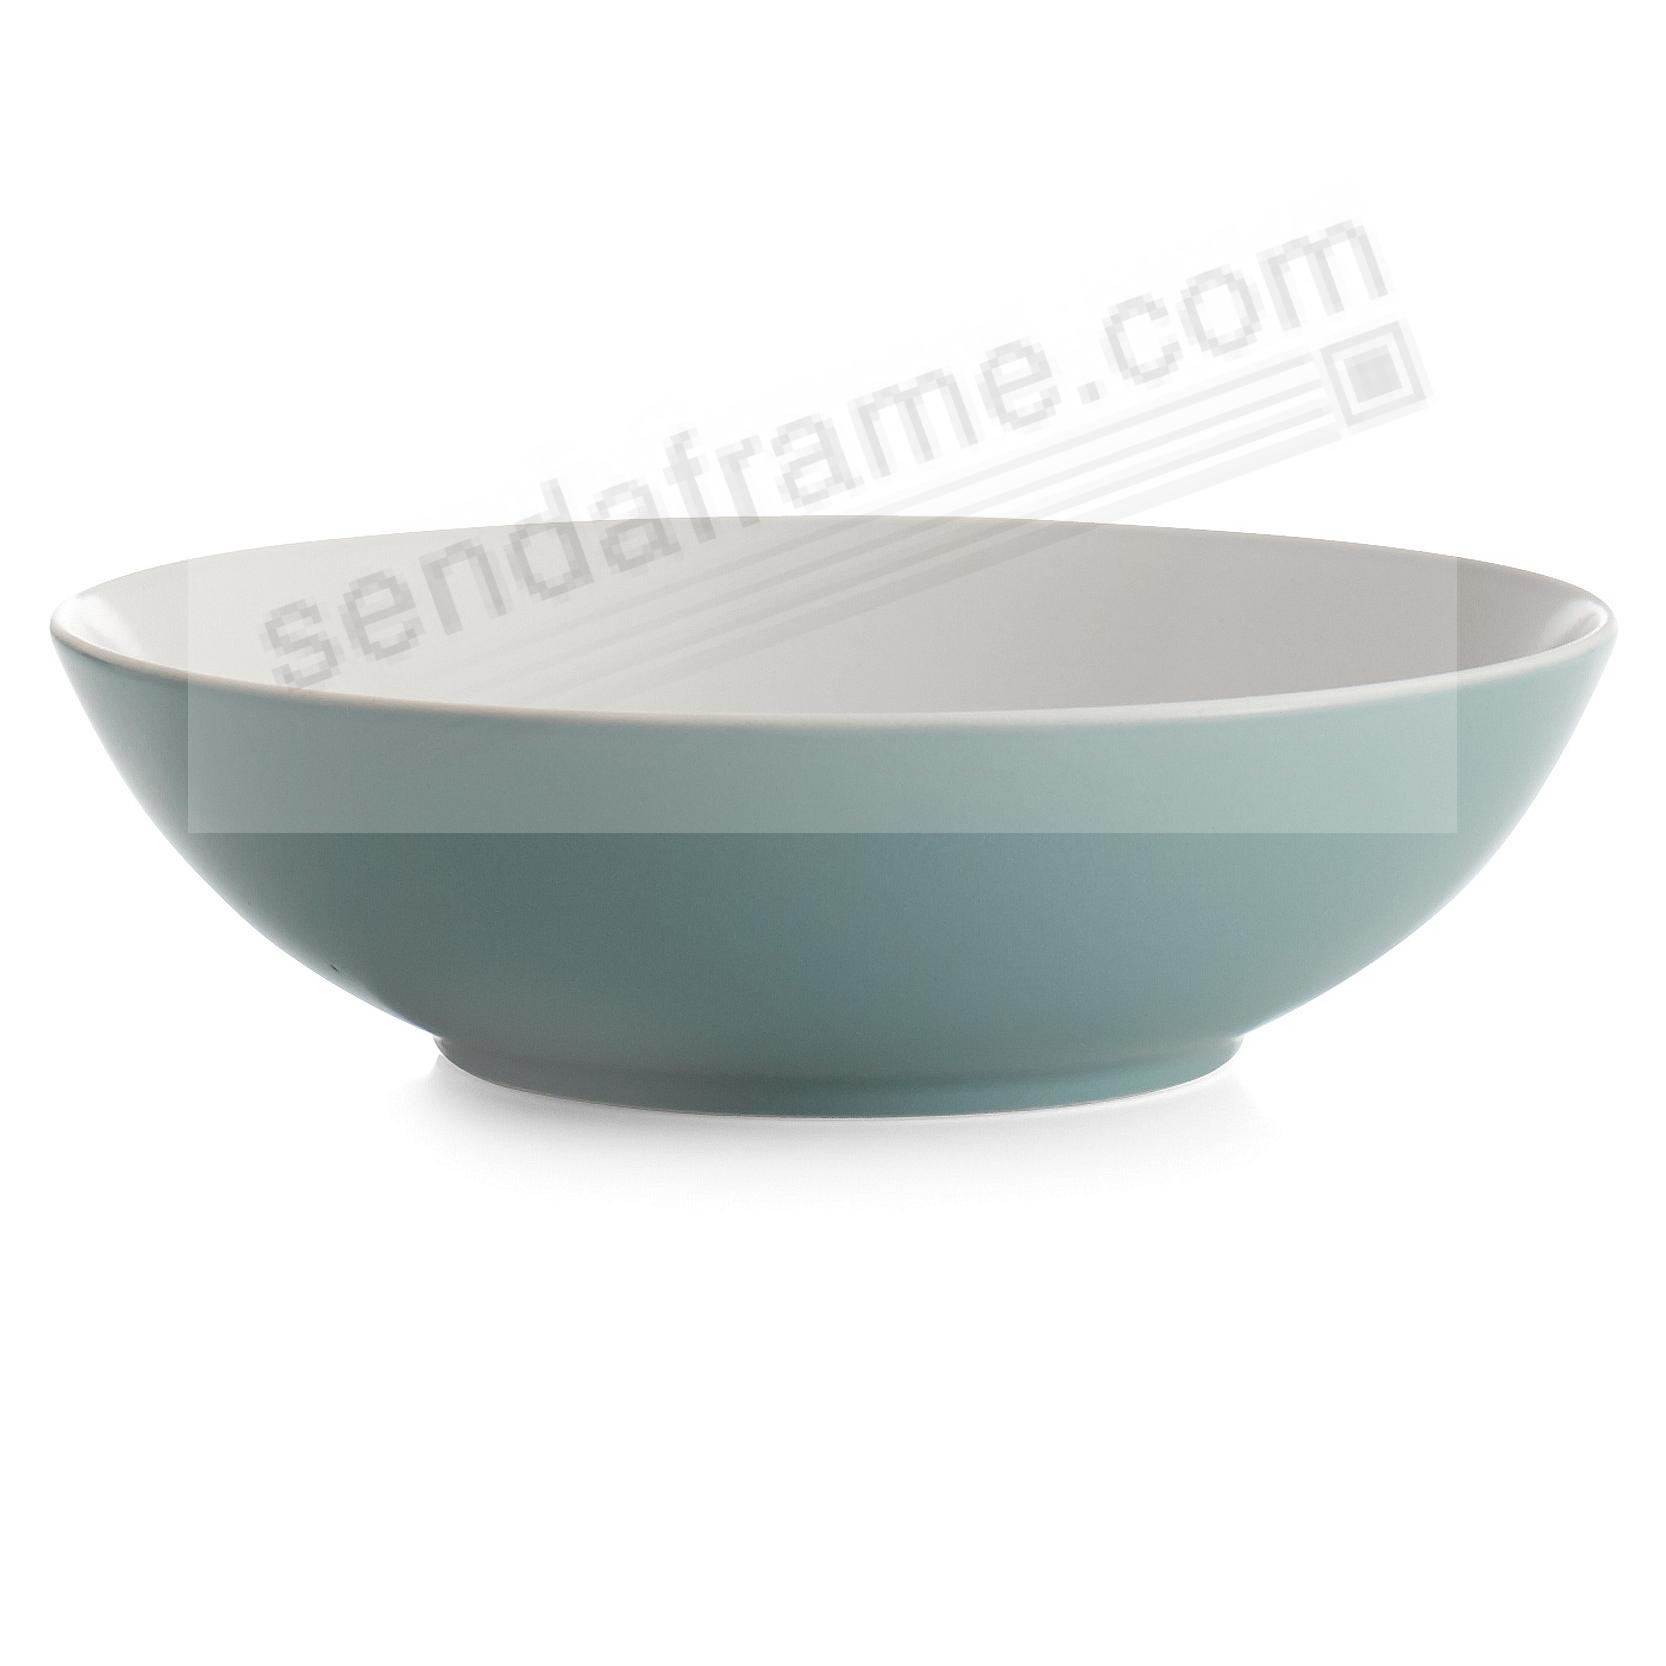 POP SOUP/CEREAL BOWL OCEAN-BLUE by Nambe®